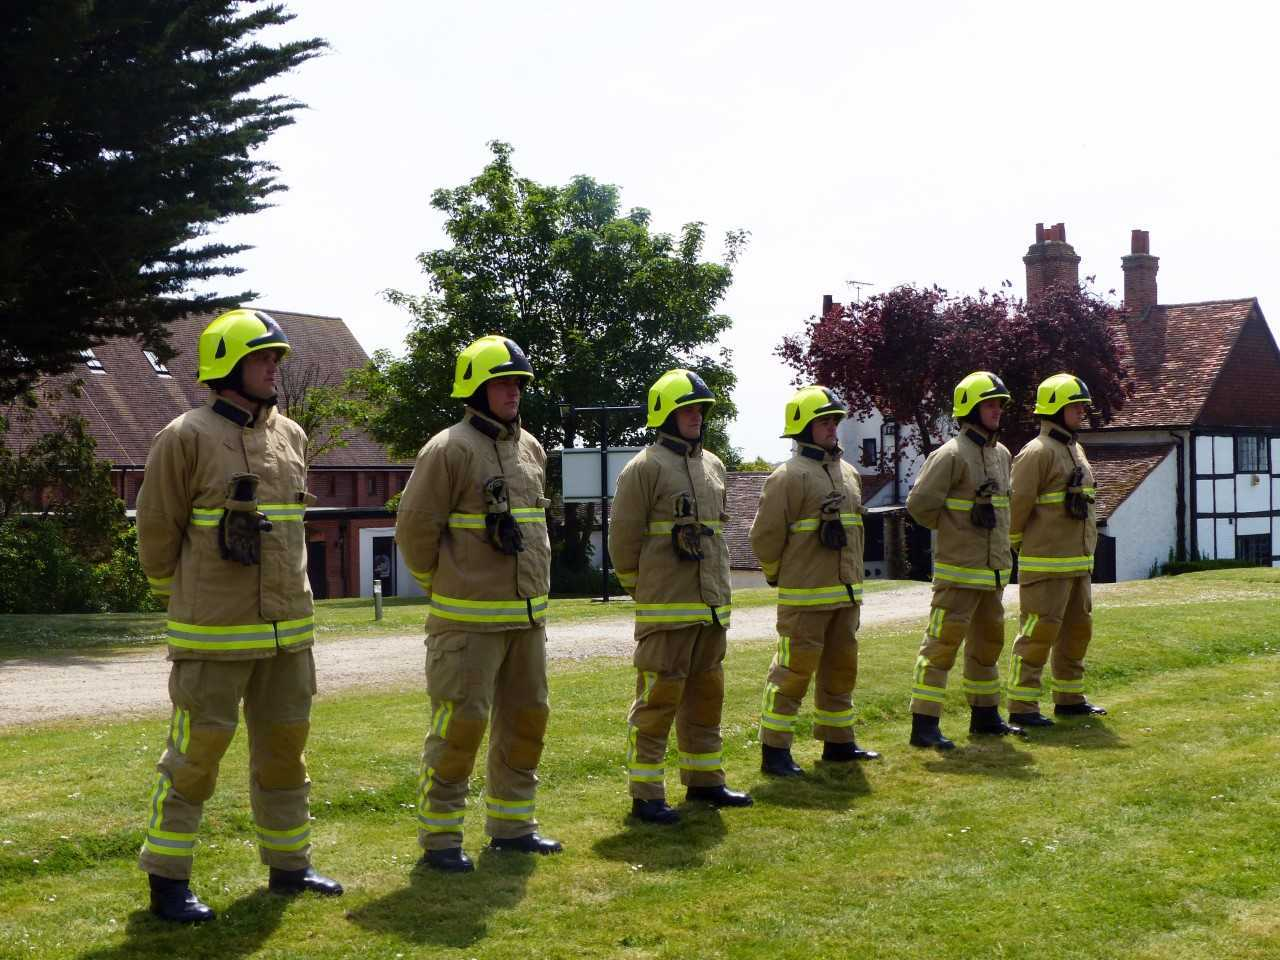 Only 22 firefighters in Berkshire are female